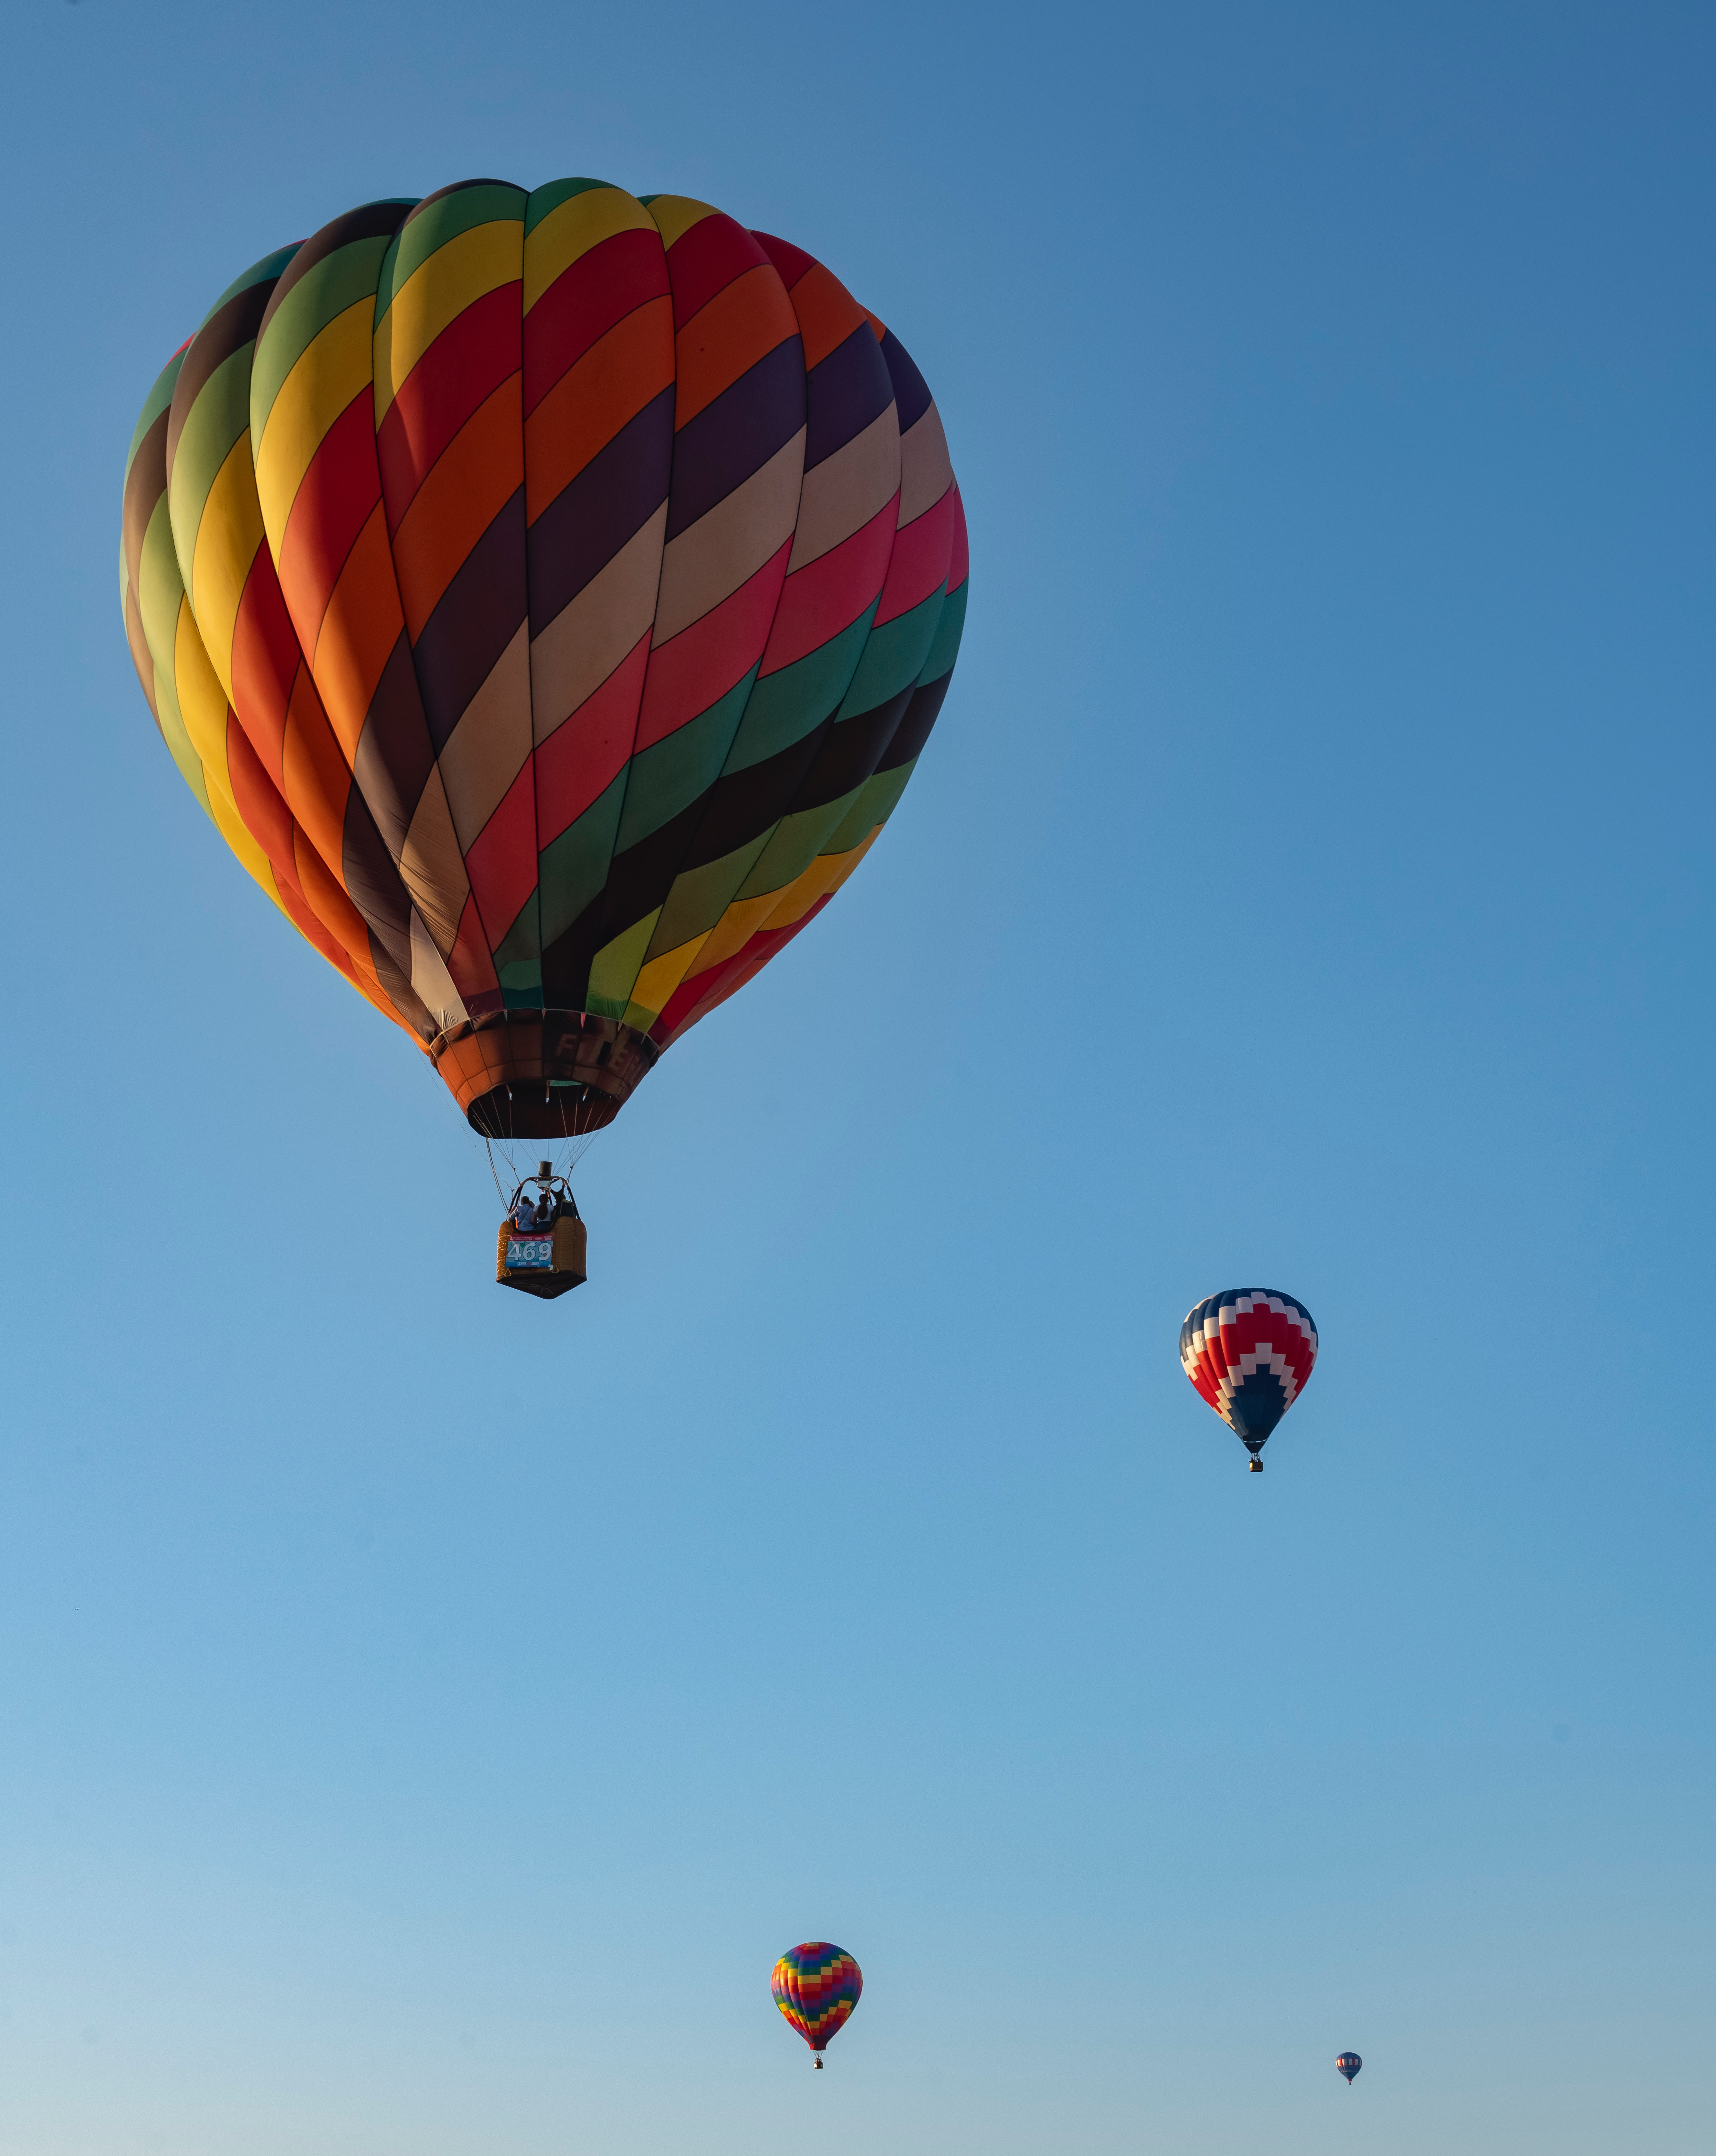 Colorful Hot Air Balloons Free Stock Photo